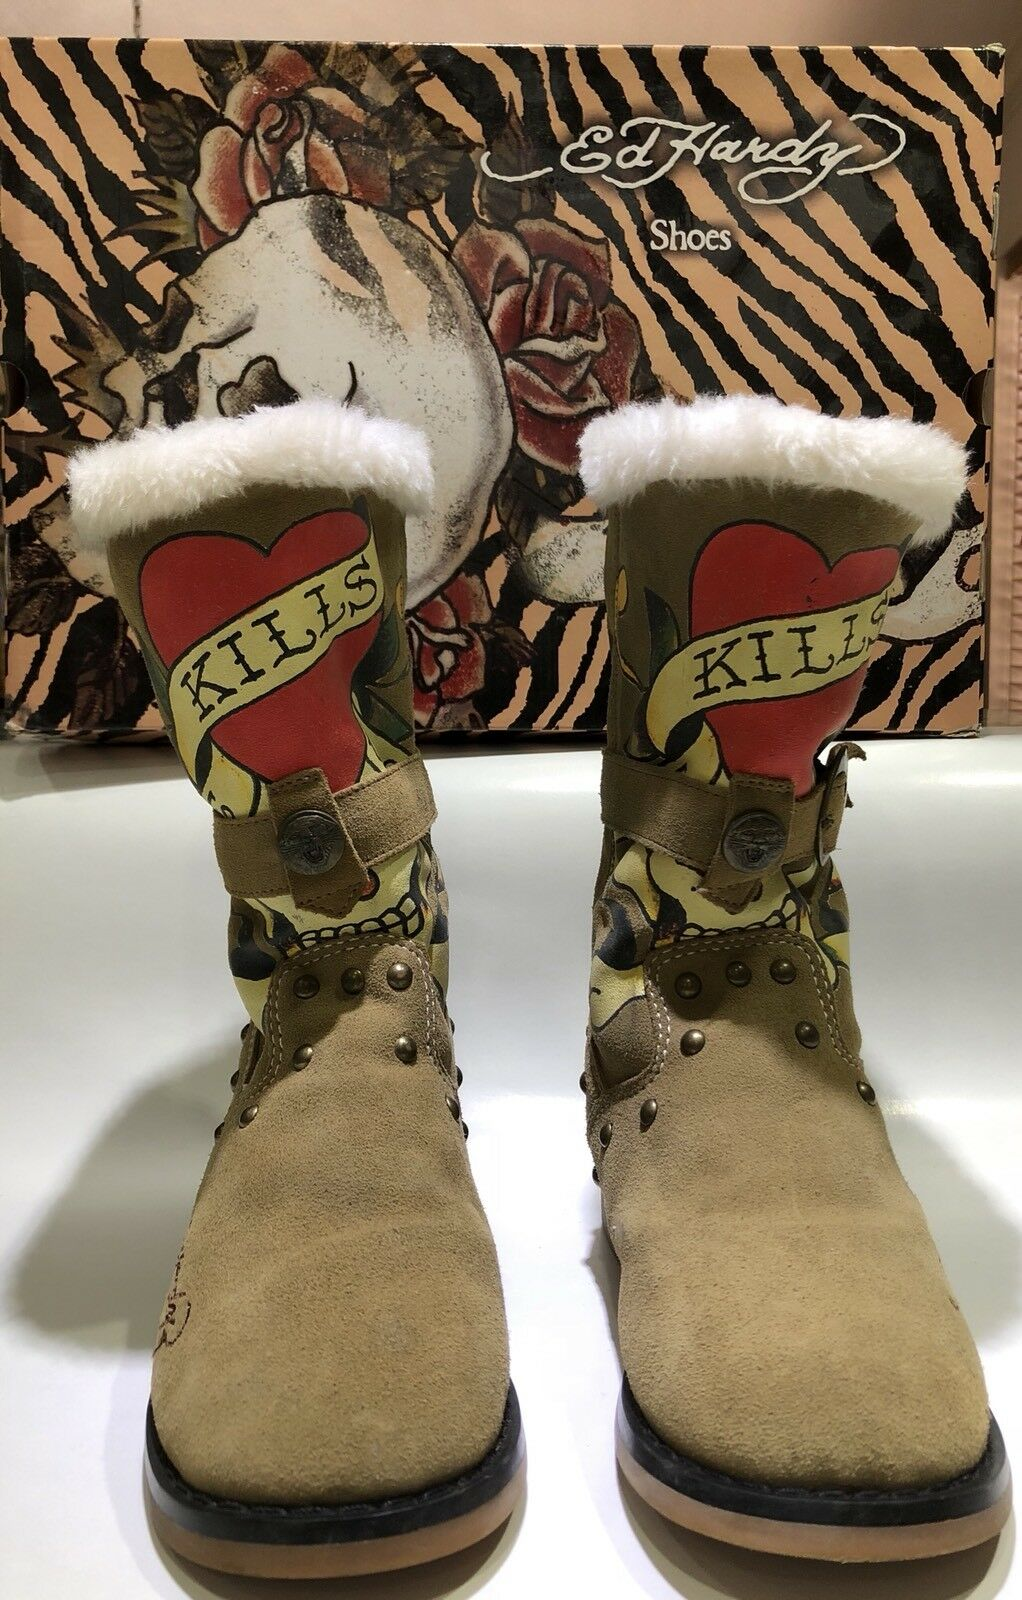 Ed Hardy Taupe Suede Moccasin Boots Euro Size 36 - US Size 5